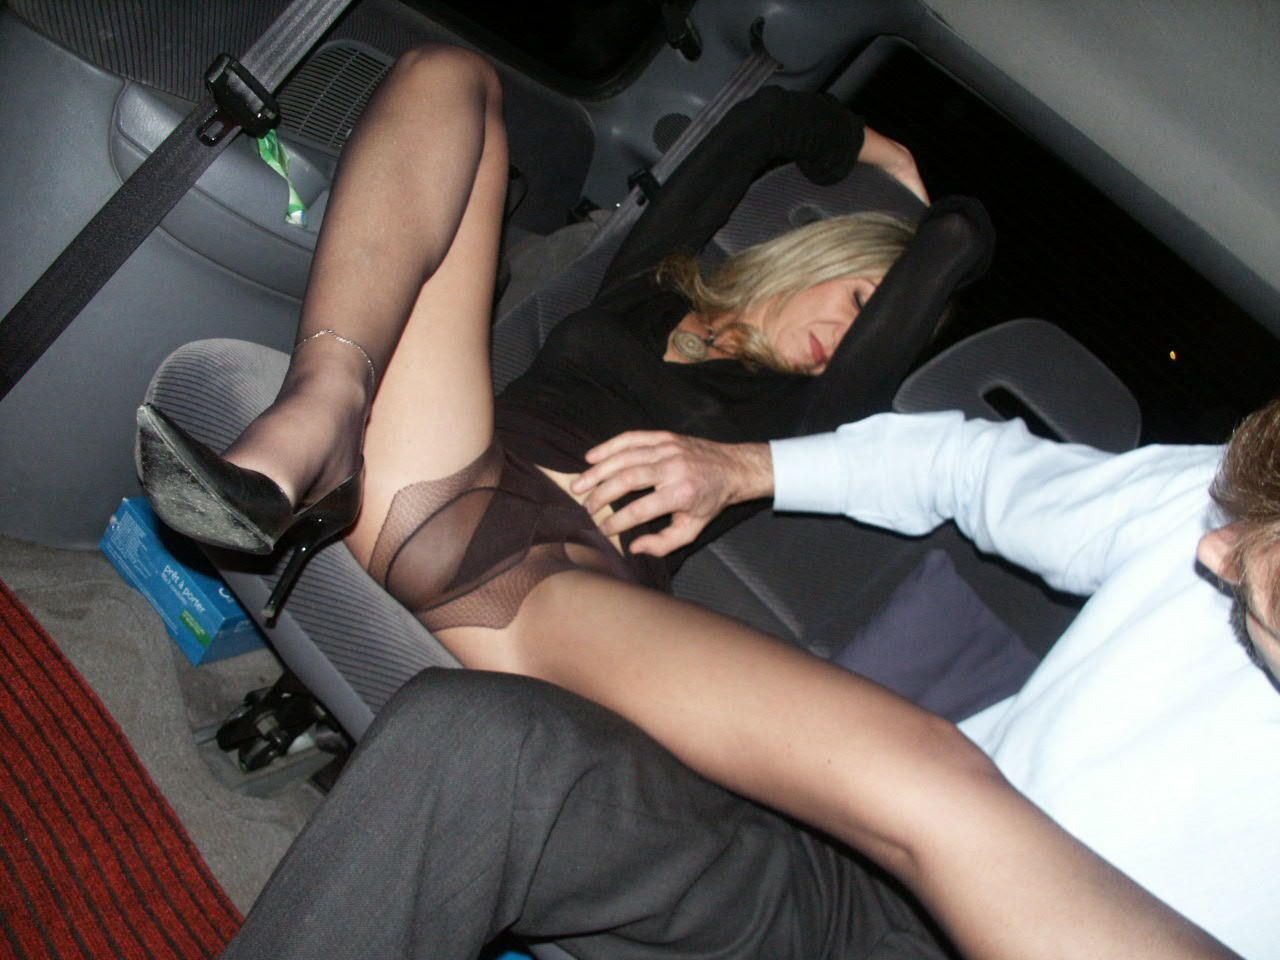 Good phrase pantyhose legs in cars about one